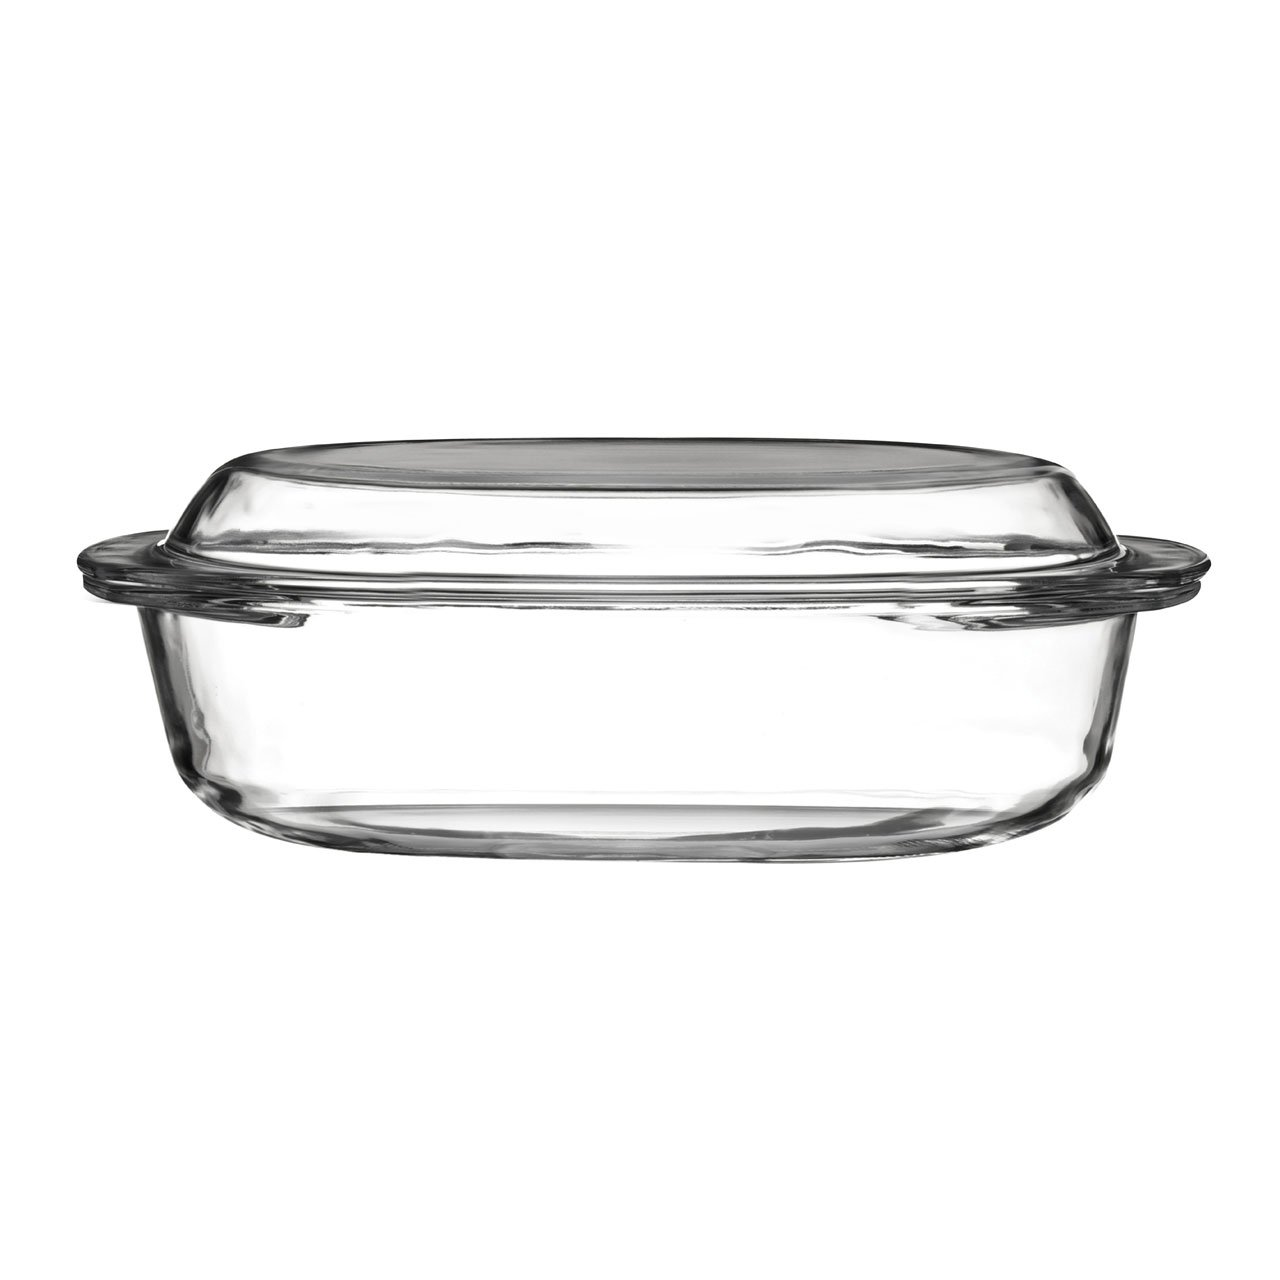 Clear Glass Oval Casserole Dish with Lid 1.5L Capacity ARTISANA